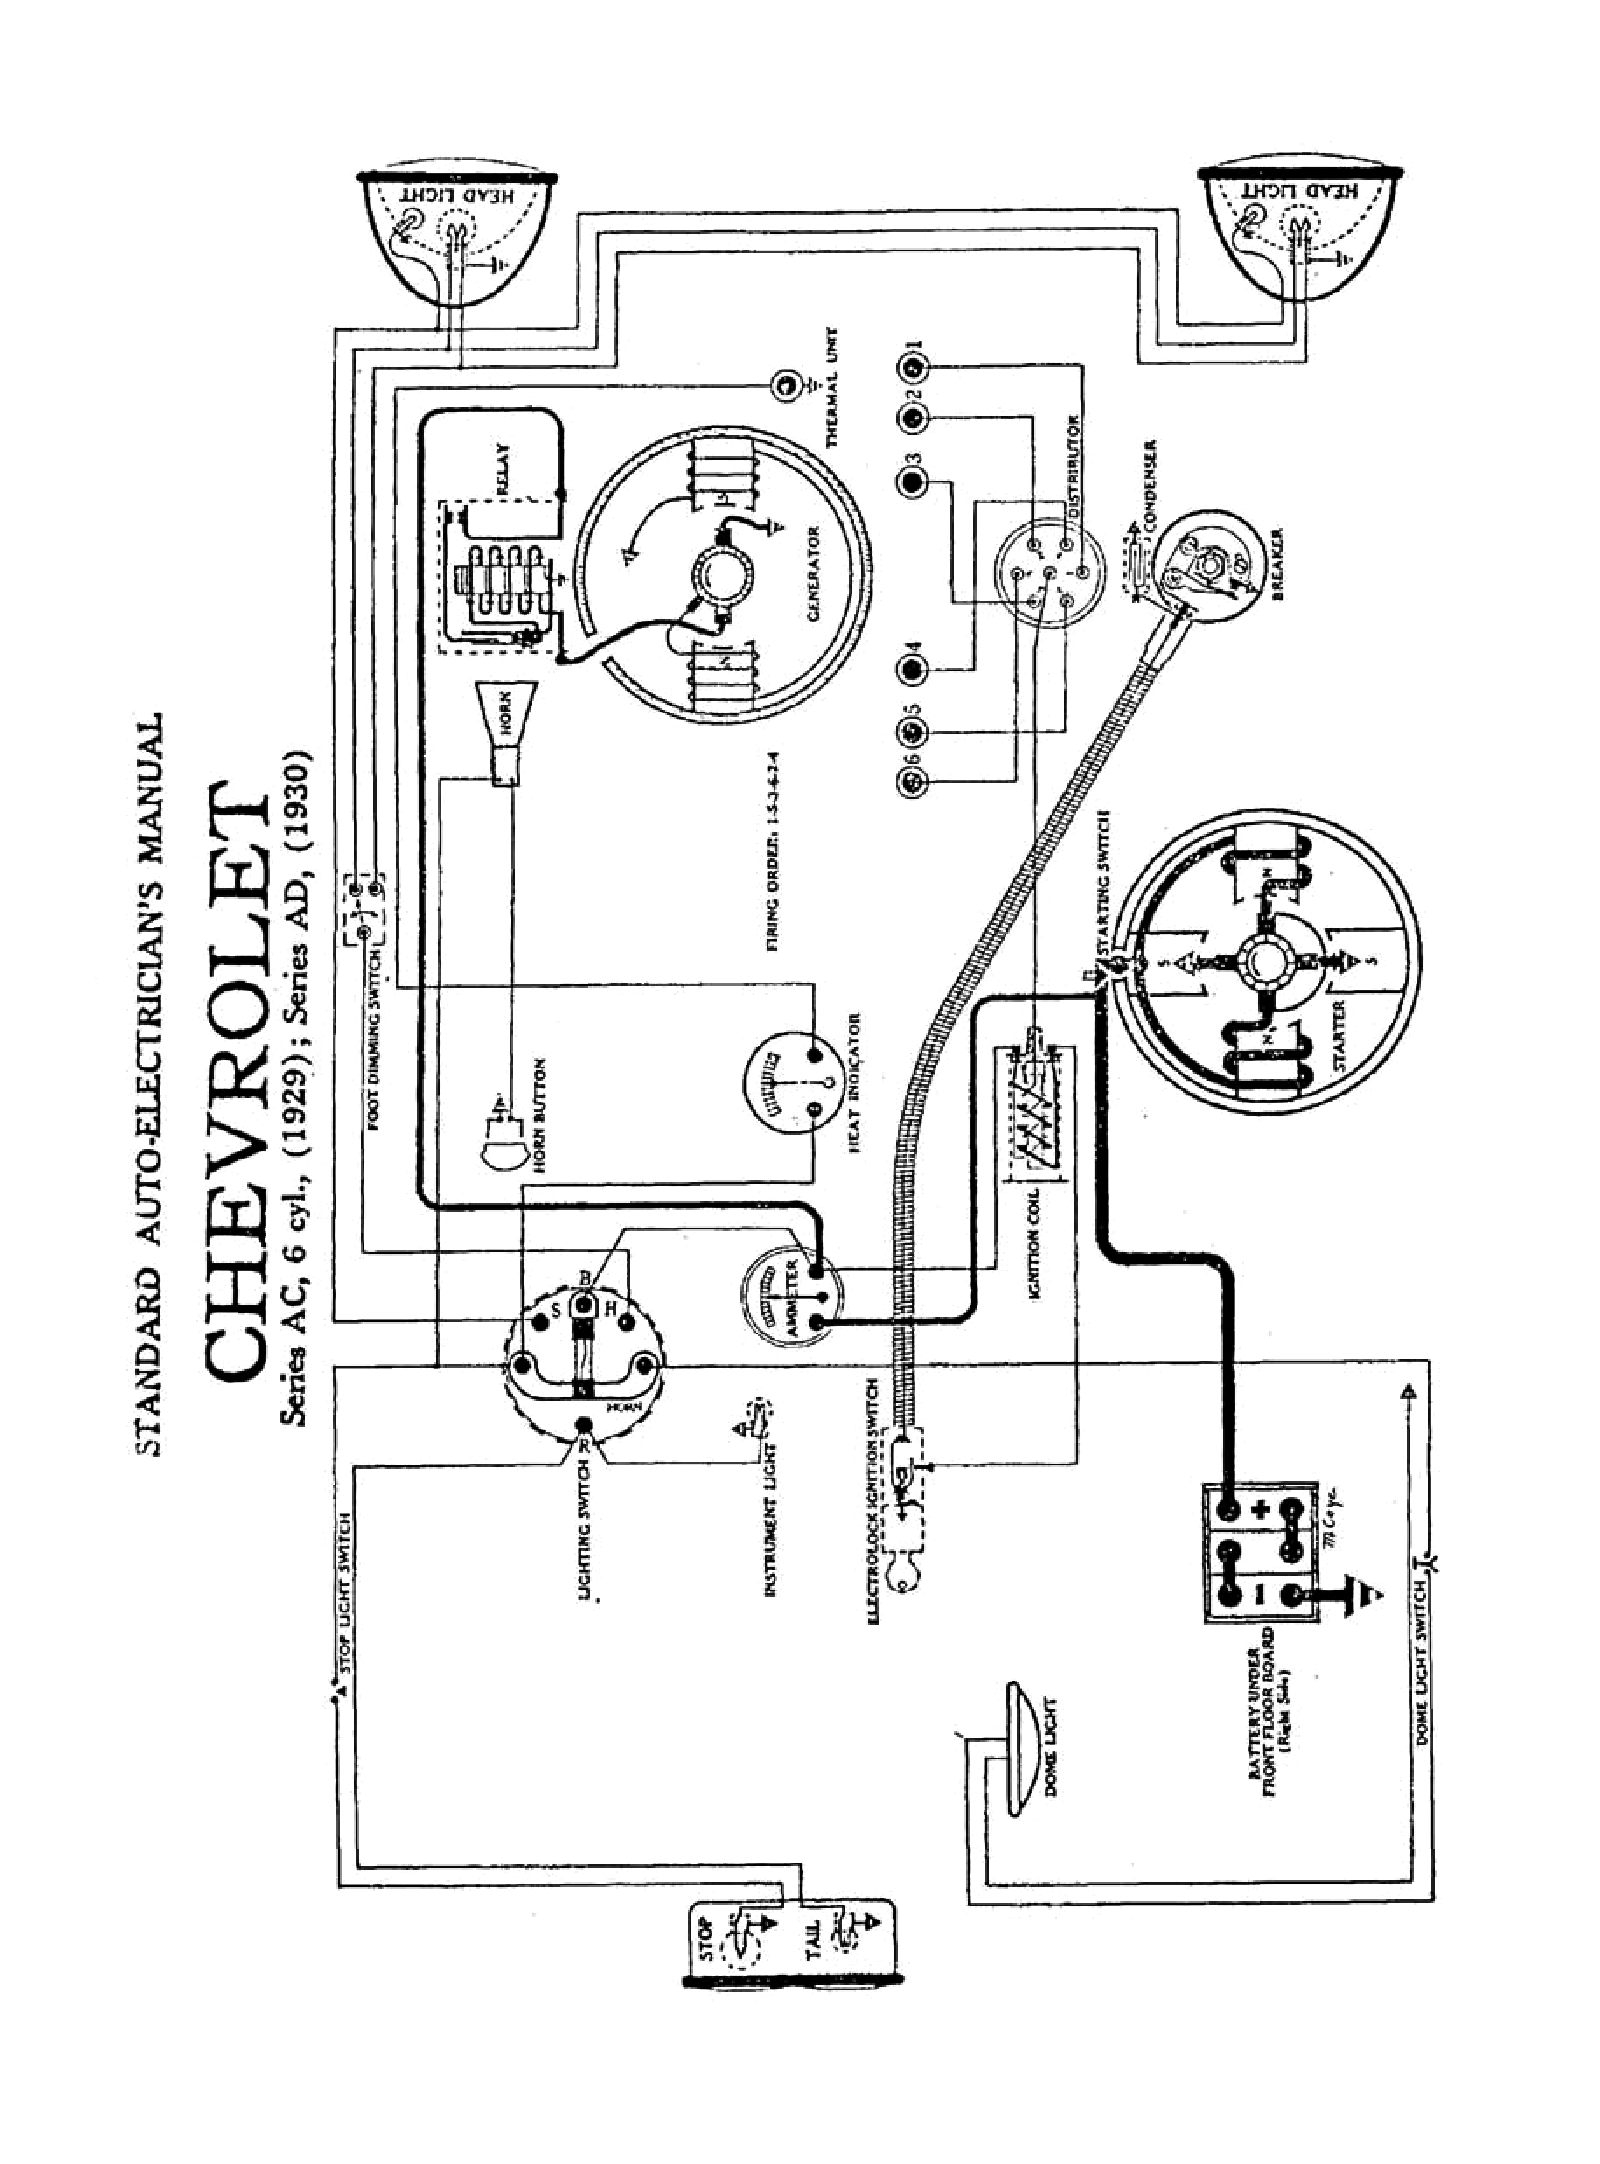 Free Download 3 Way Wiring Diagram